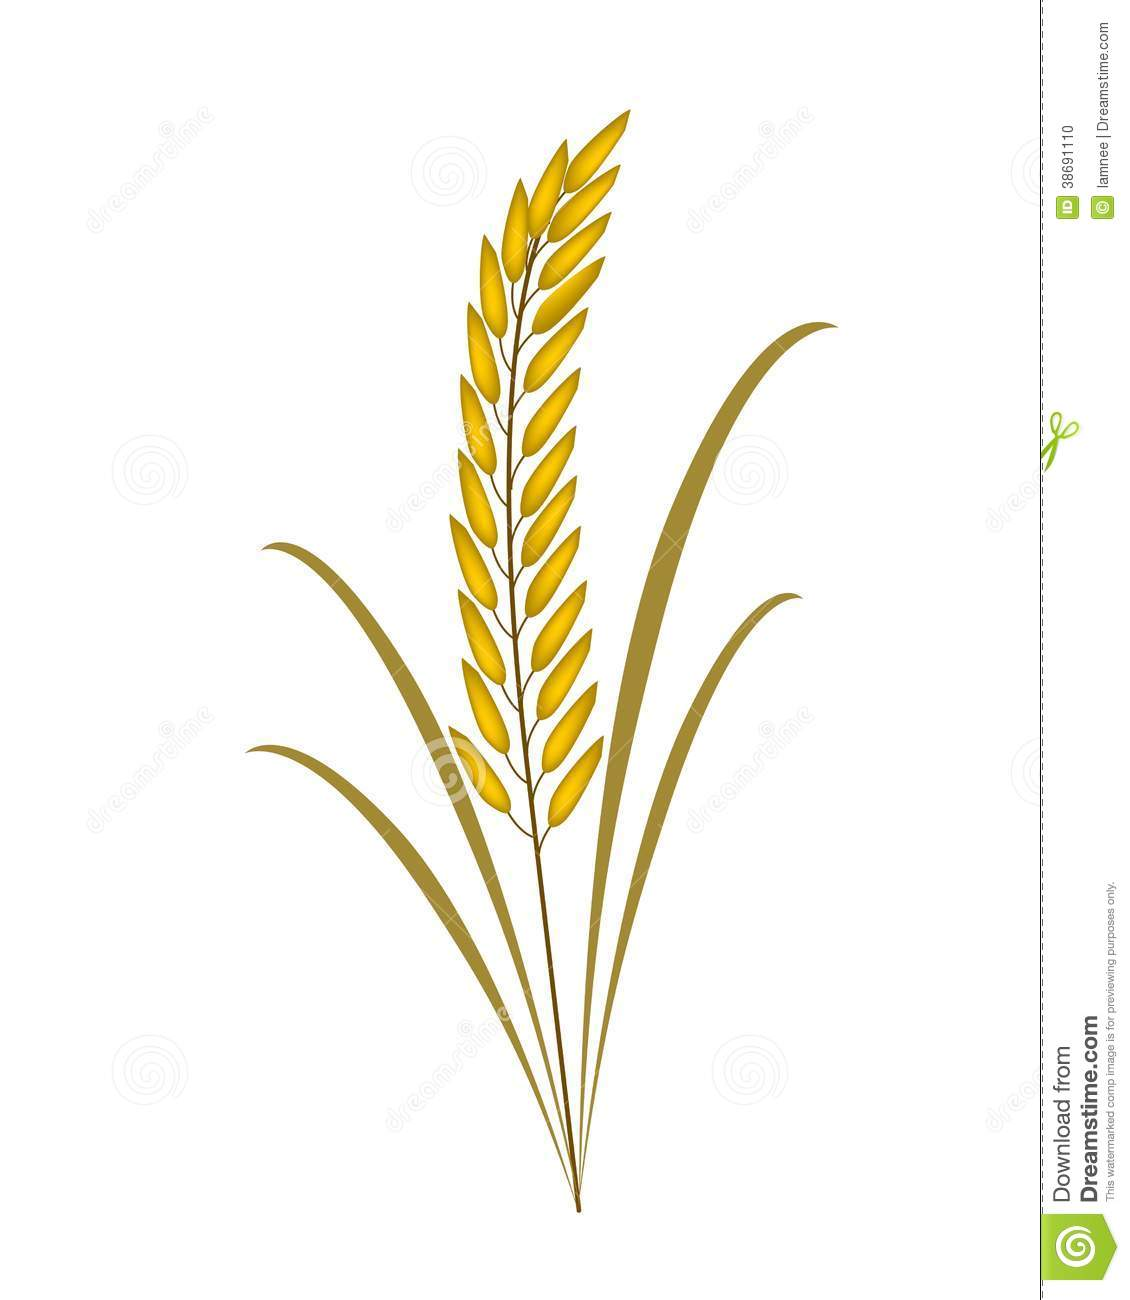 Rice Plant Clipart Black And White 8 Clipart Station